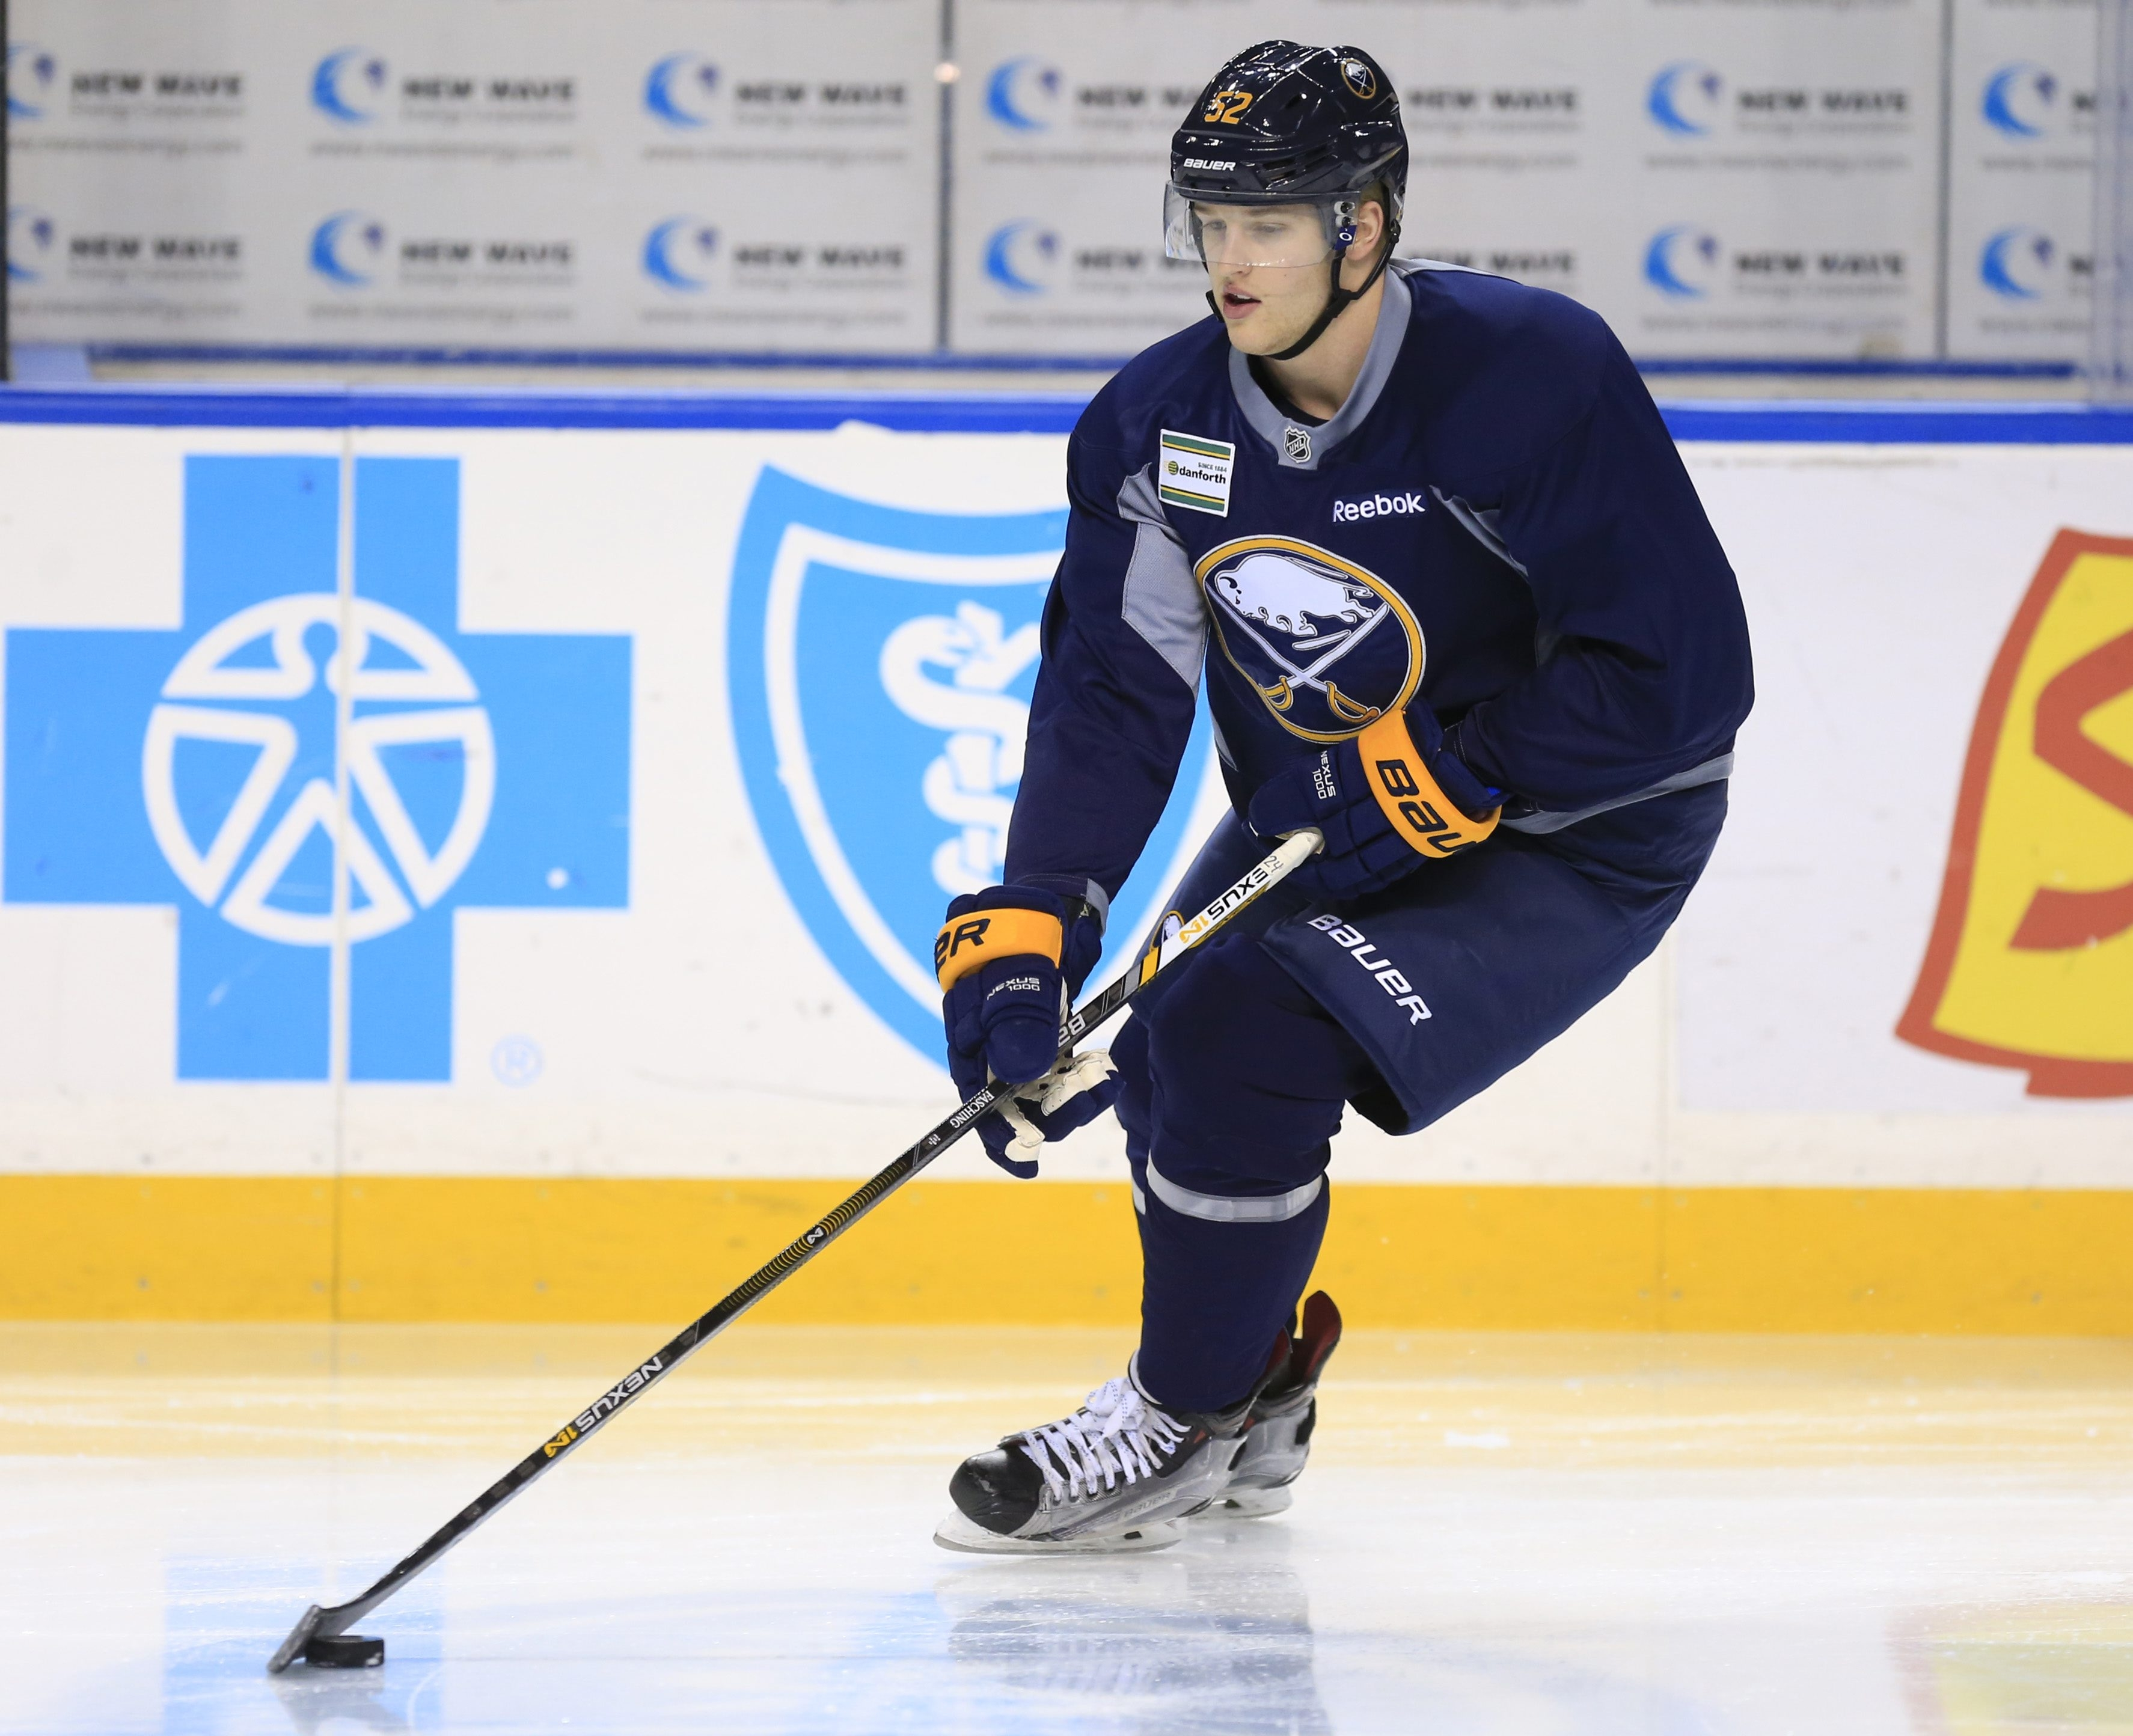 Hudson Fasching, who signed a three-year contract with the Sabres on Monday, practices in First Niagara Center on Thursday.